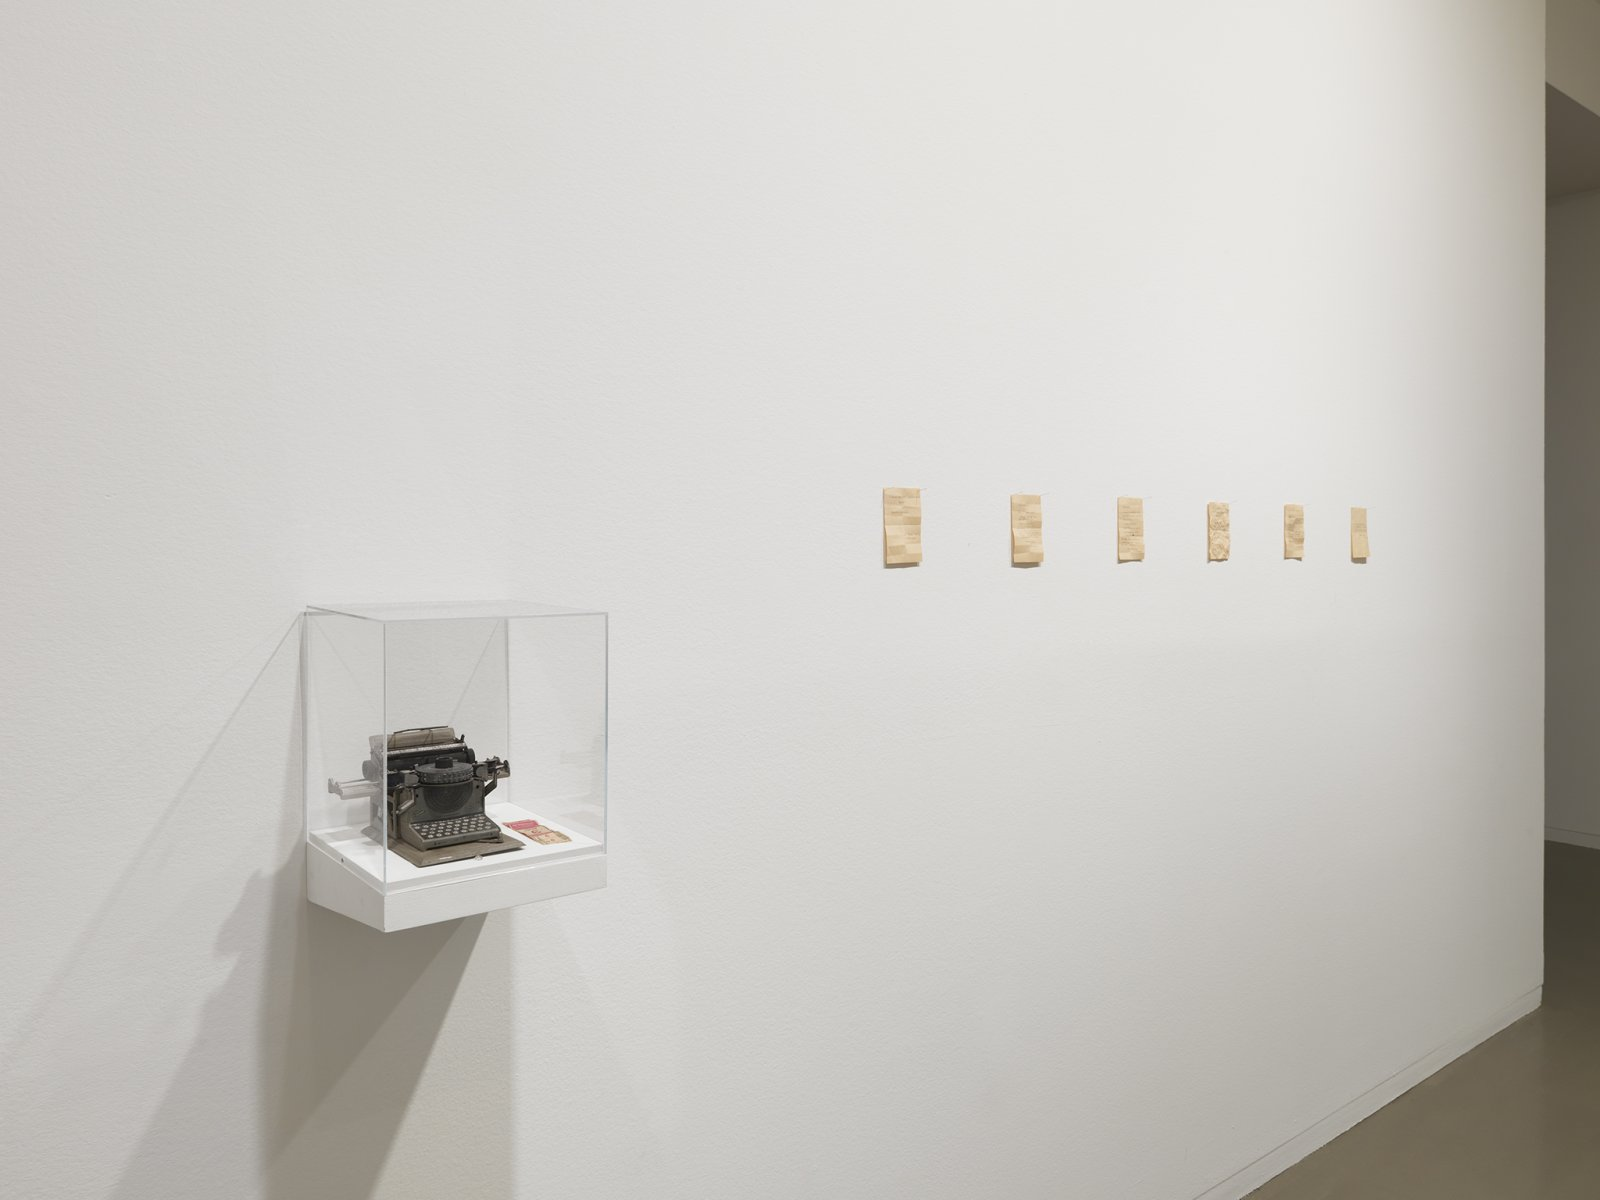 Geoffrey Farmer, Notes For Strangers, 1989–1990, small typewriter, 6 typewritten notes on paper, transfer ticket, shelf with plexiglass top, dimensions variable by Geoffrey Farmer